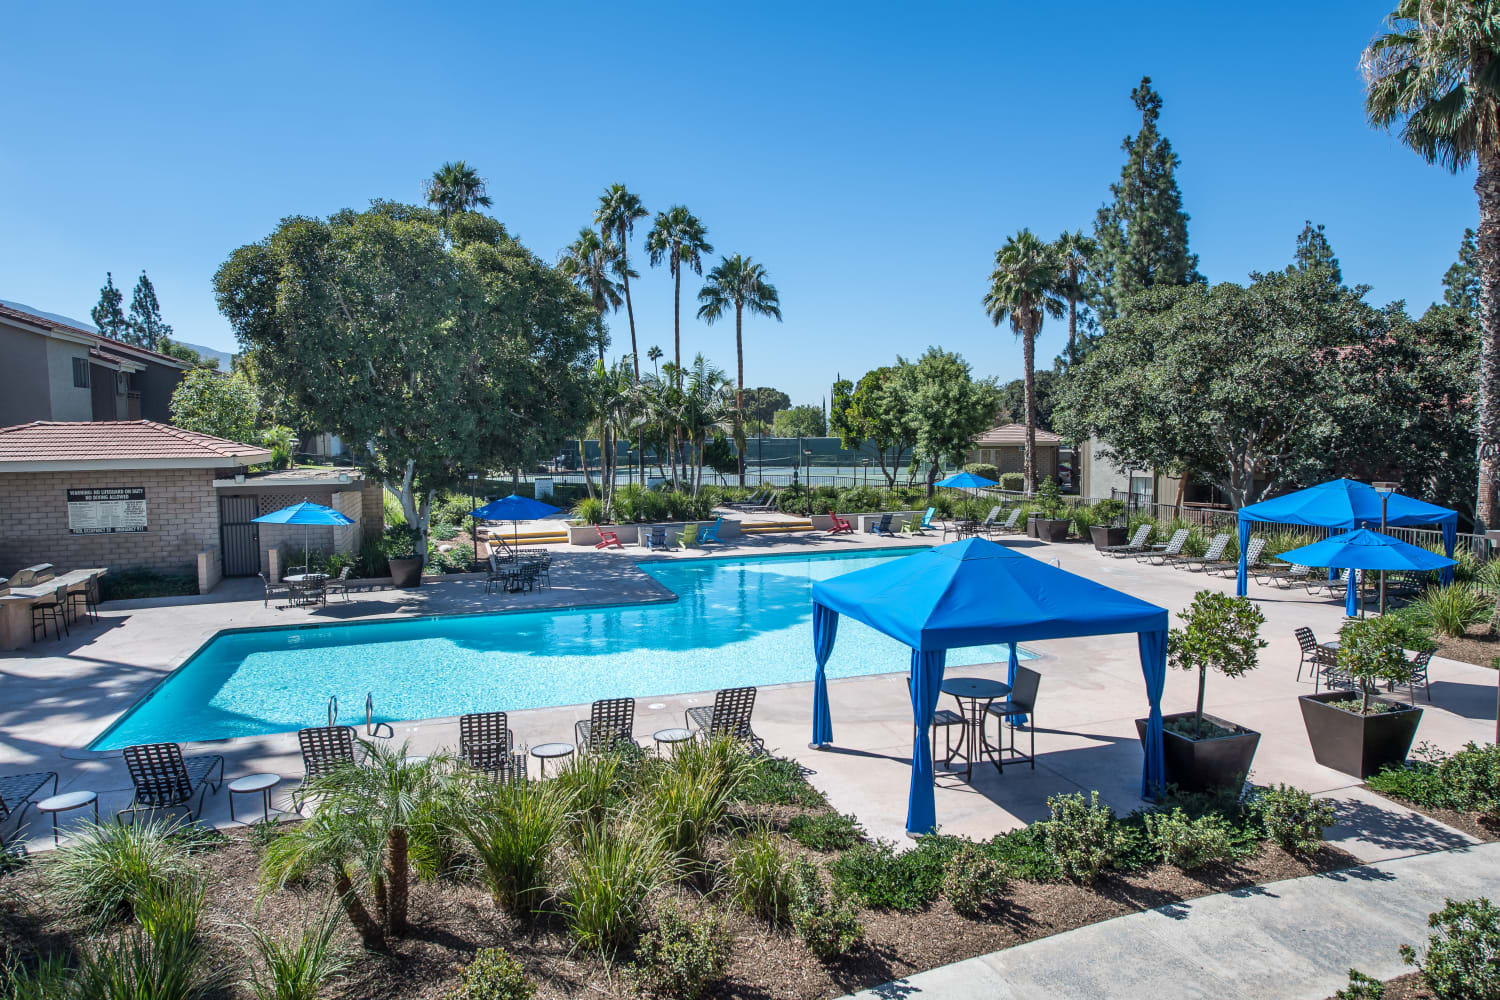 Swimming pool at Parcwood Apartments in Corona, California